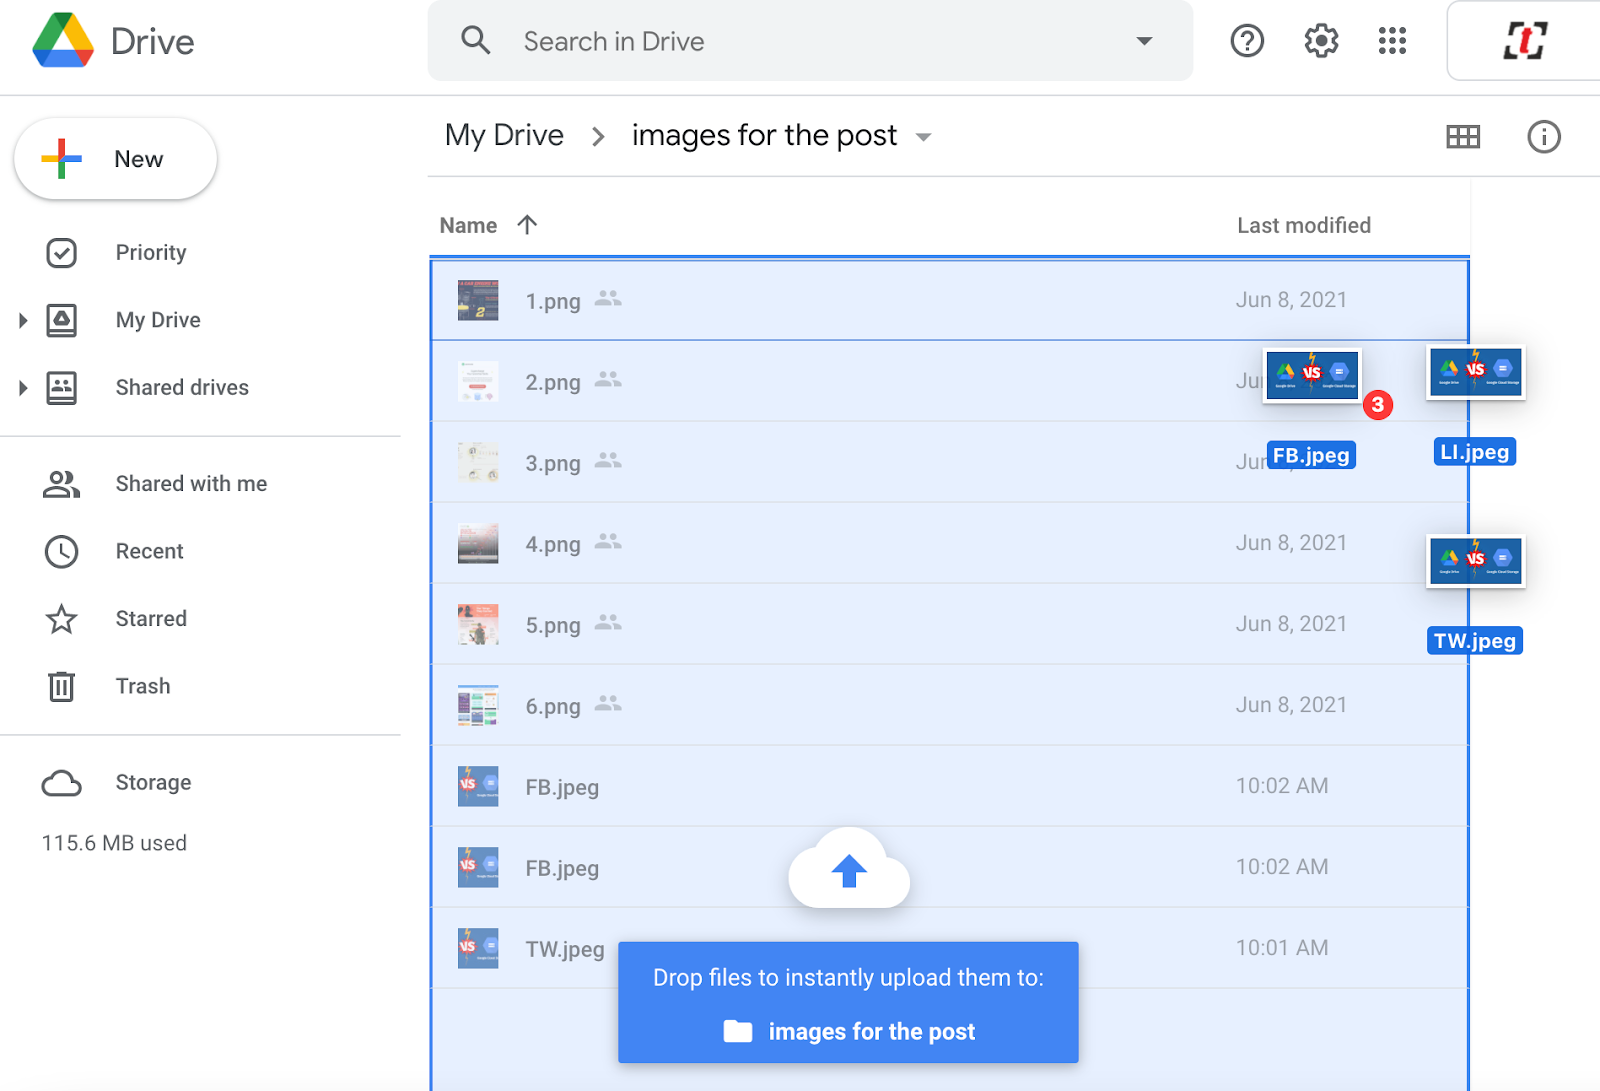 Drag-and-drop files from the folder or desktop to your Google Drive